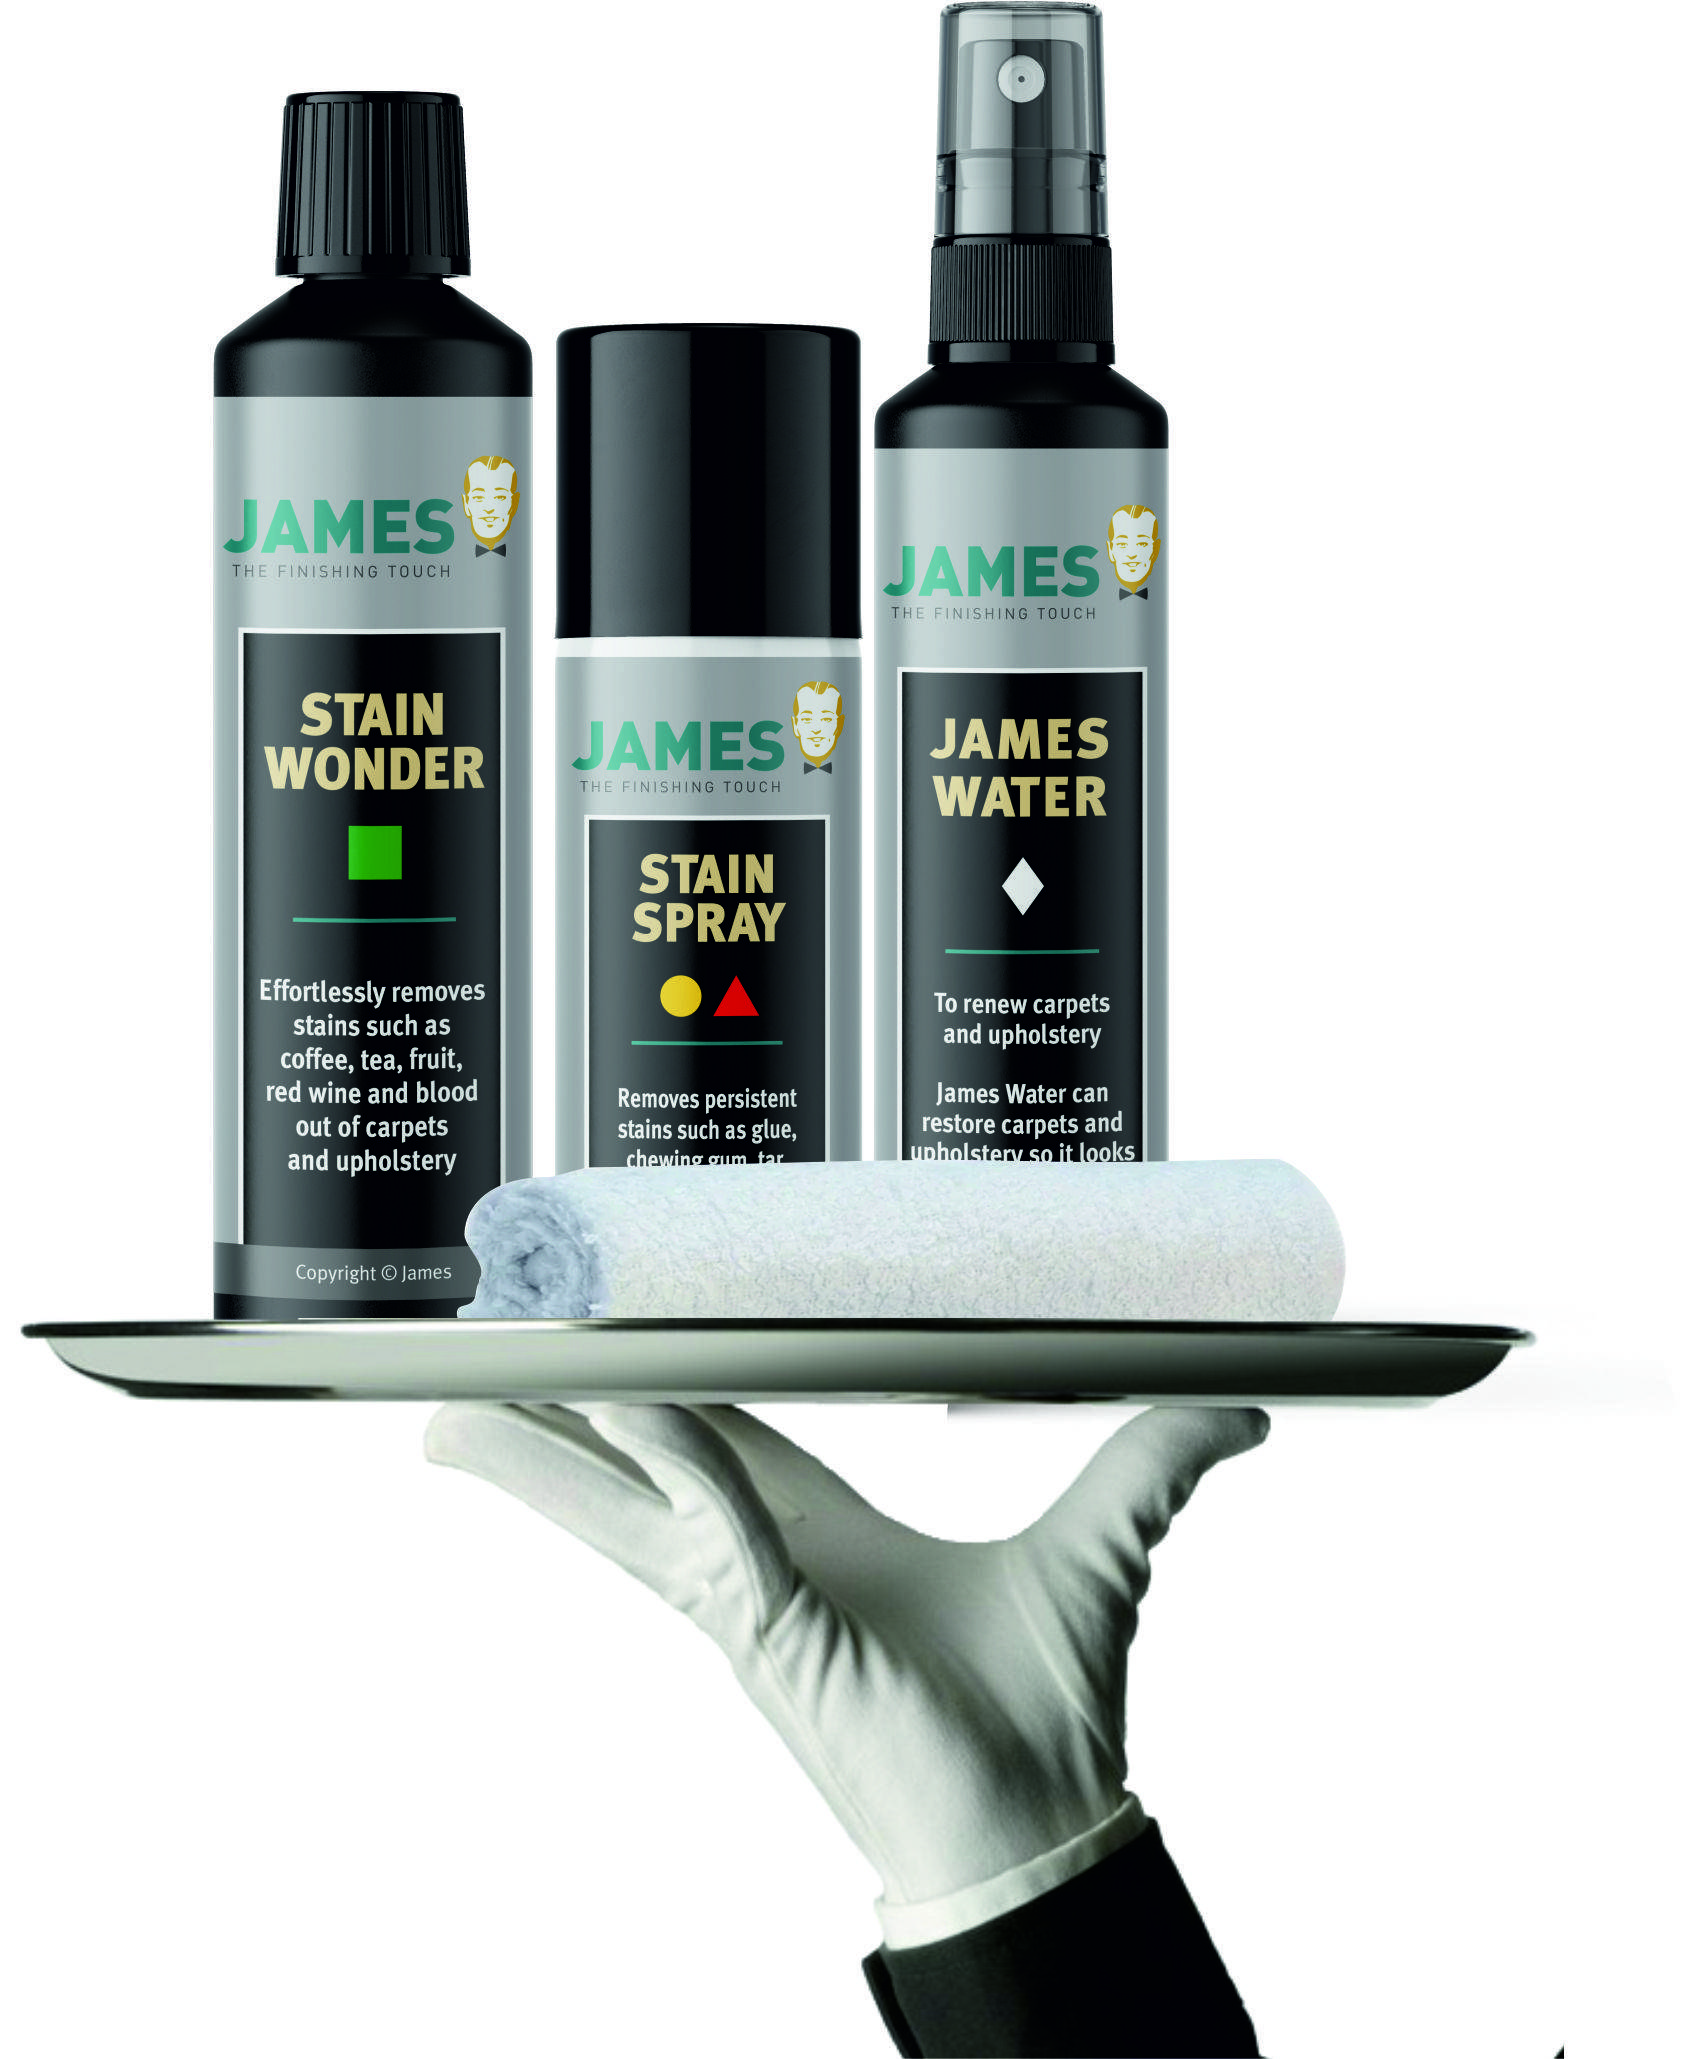 James Cleaner Starter Set - your Stain First Aid for Rugs, Carpet and Upholstery image 3